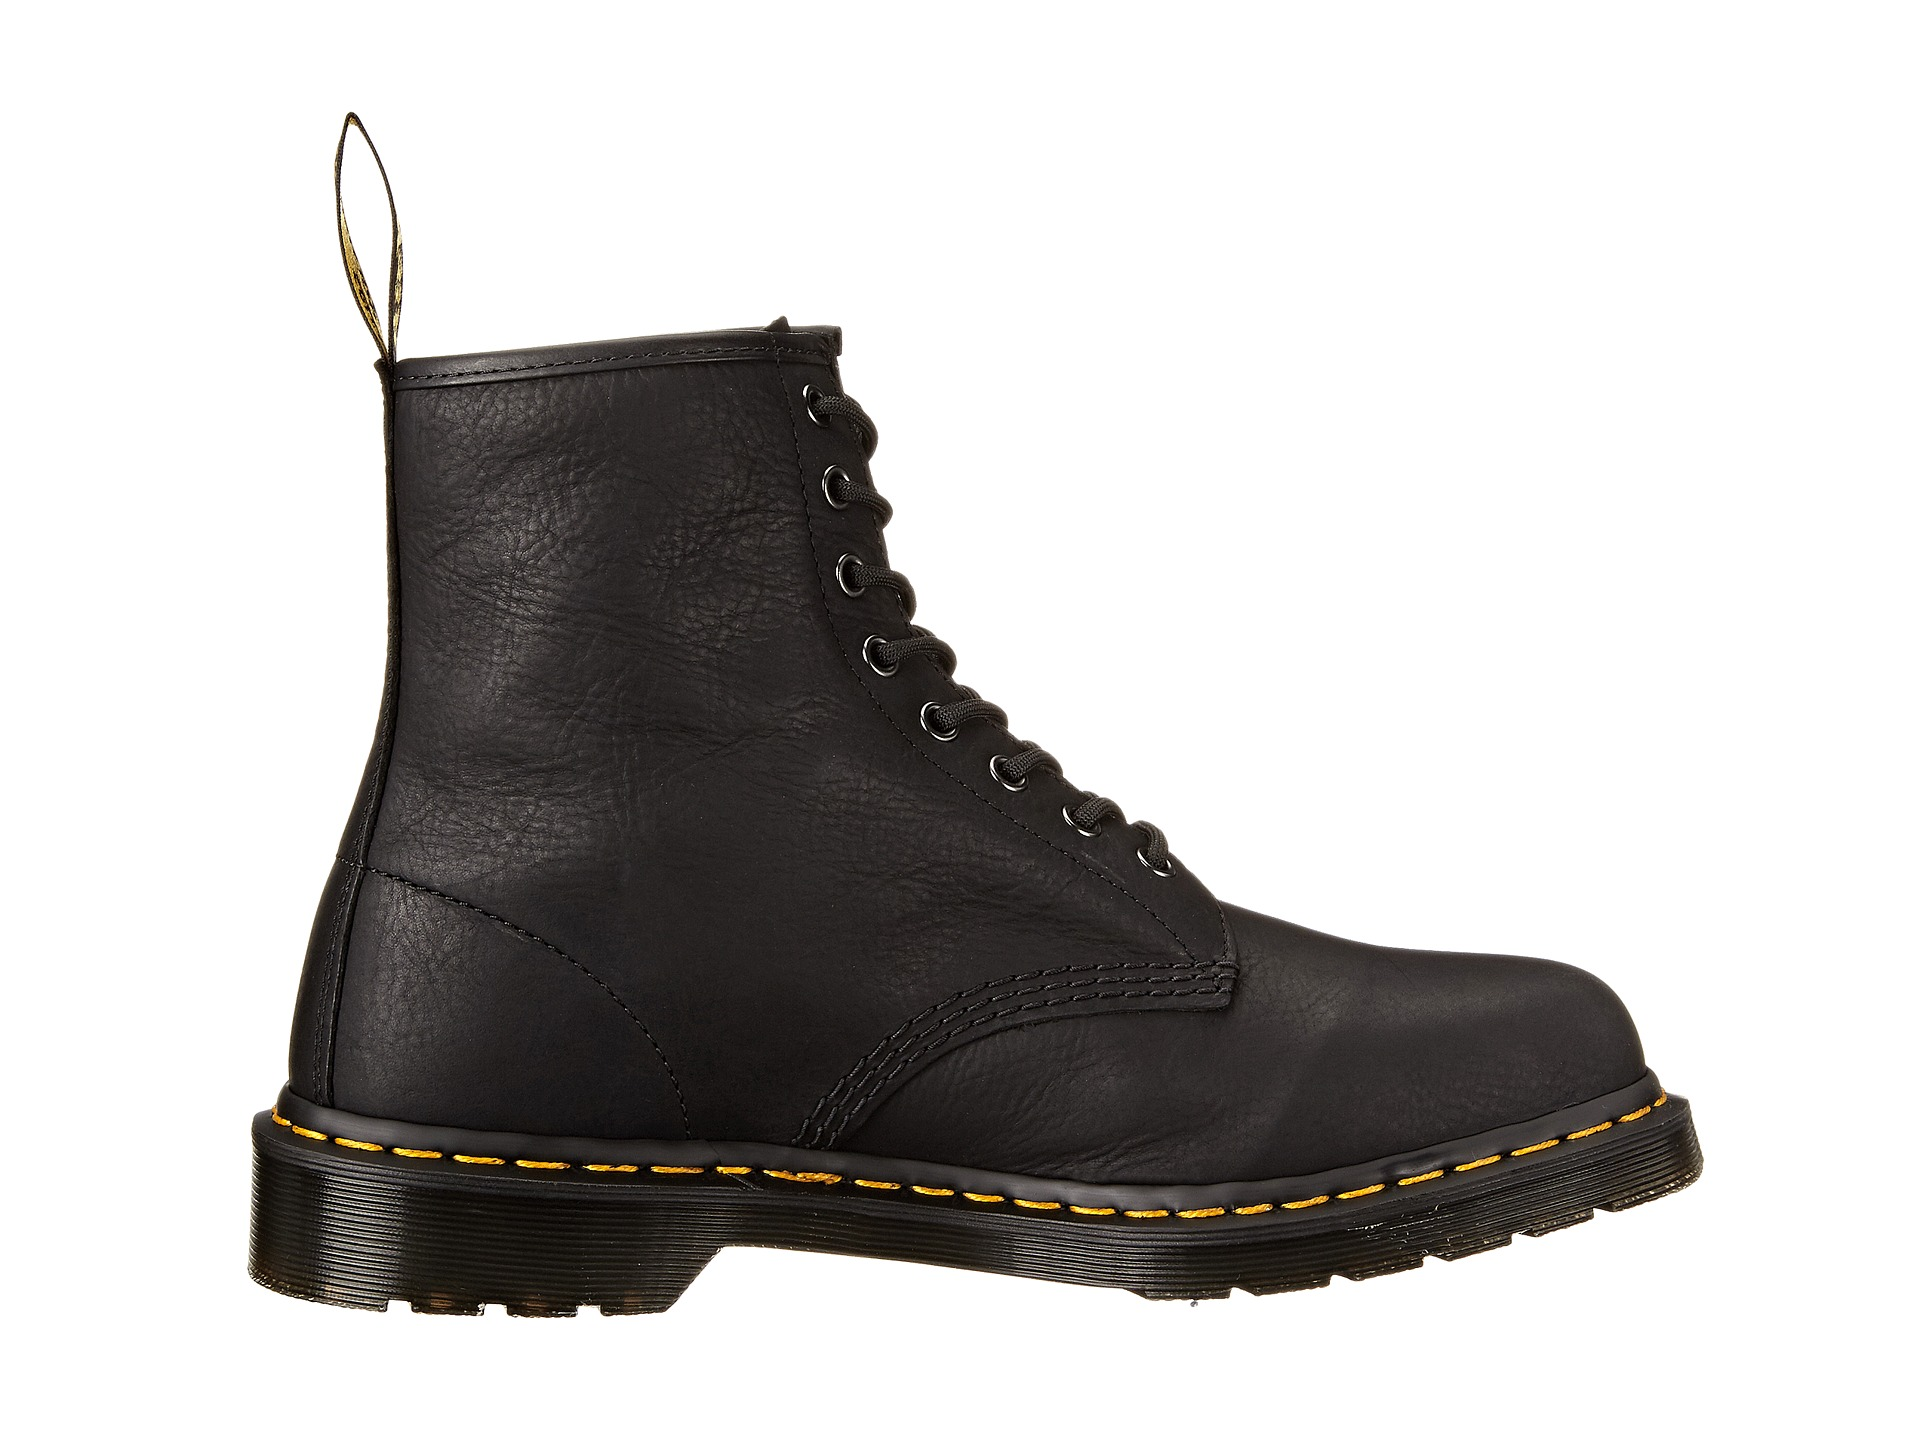 dr martens 1460 8 eye boot soft leather at zappos